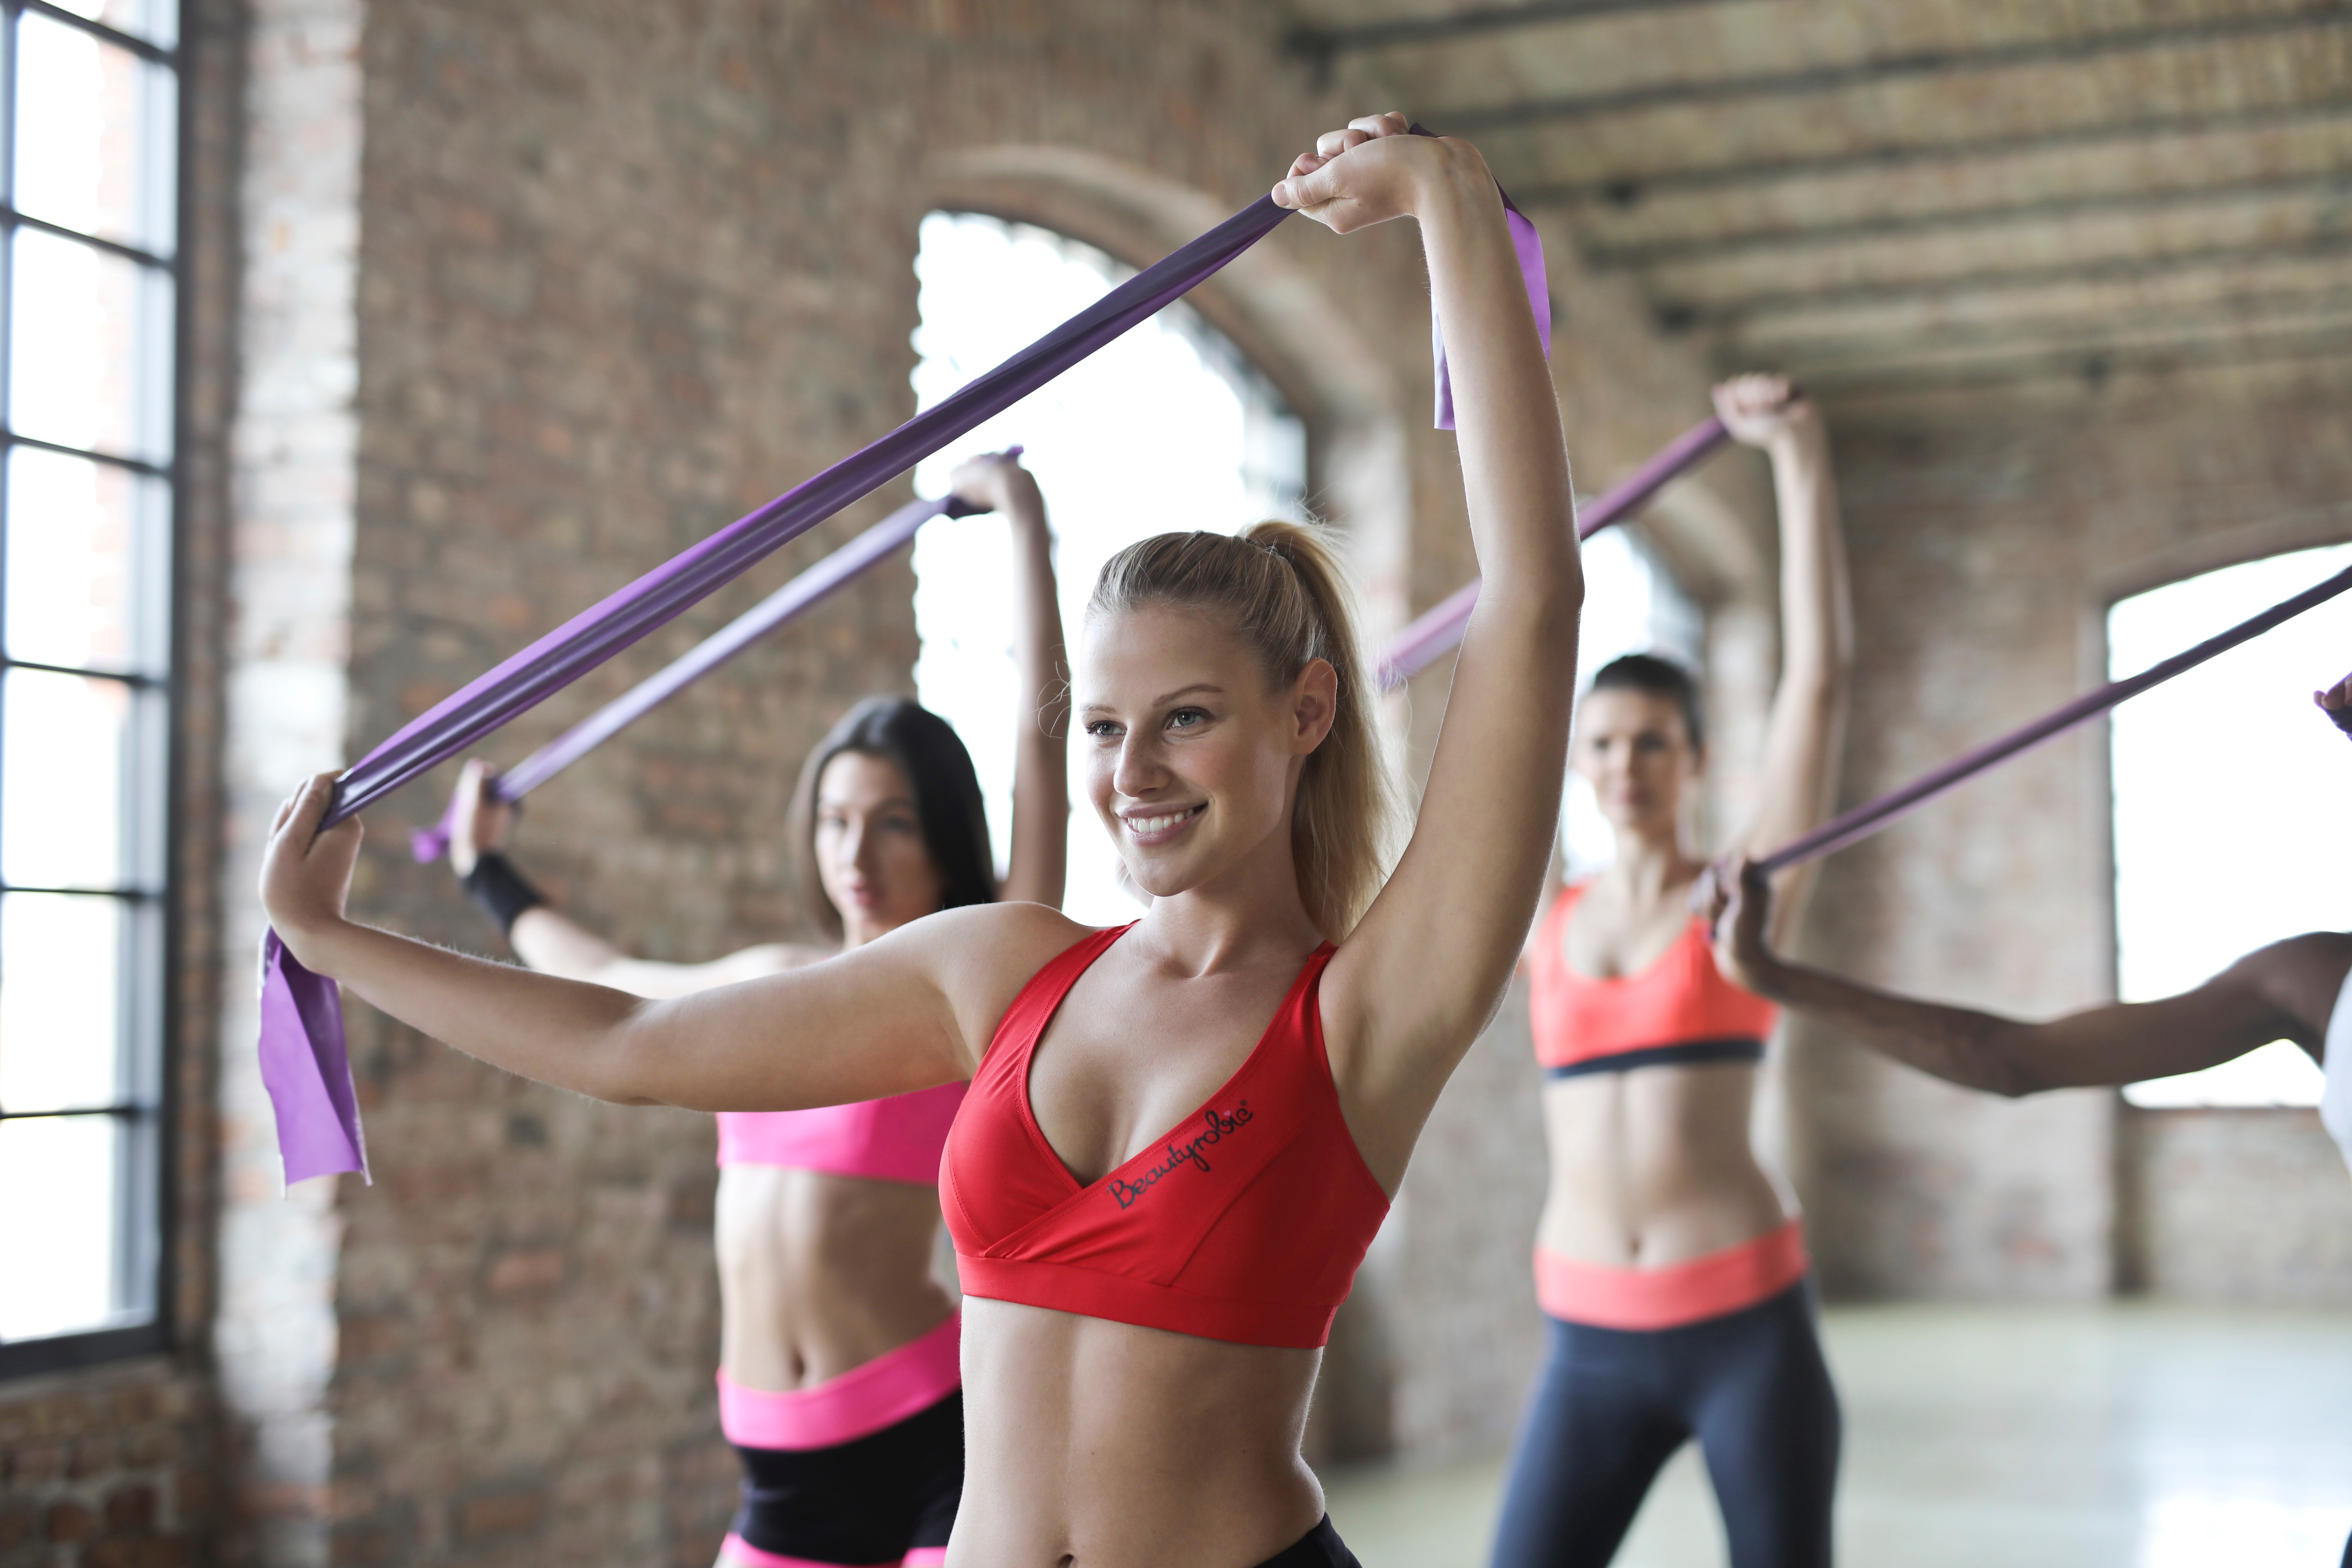 Training plan: Resistance Bands